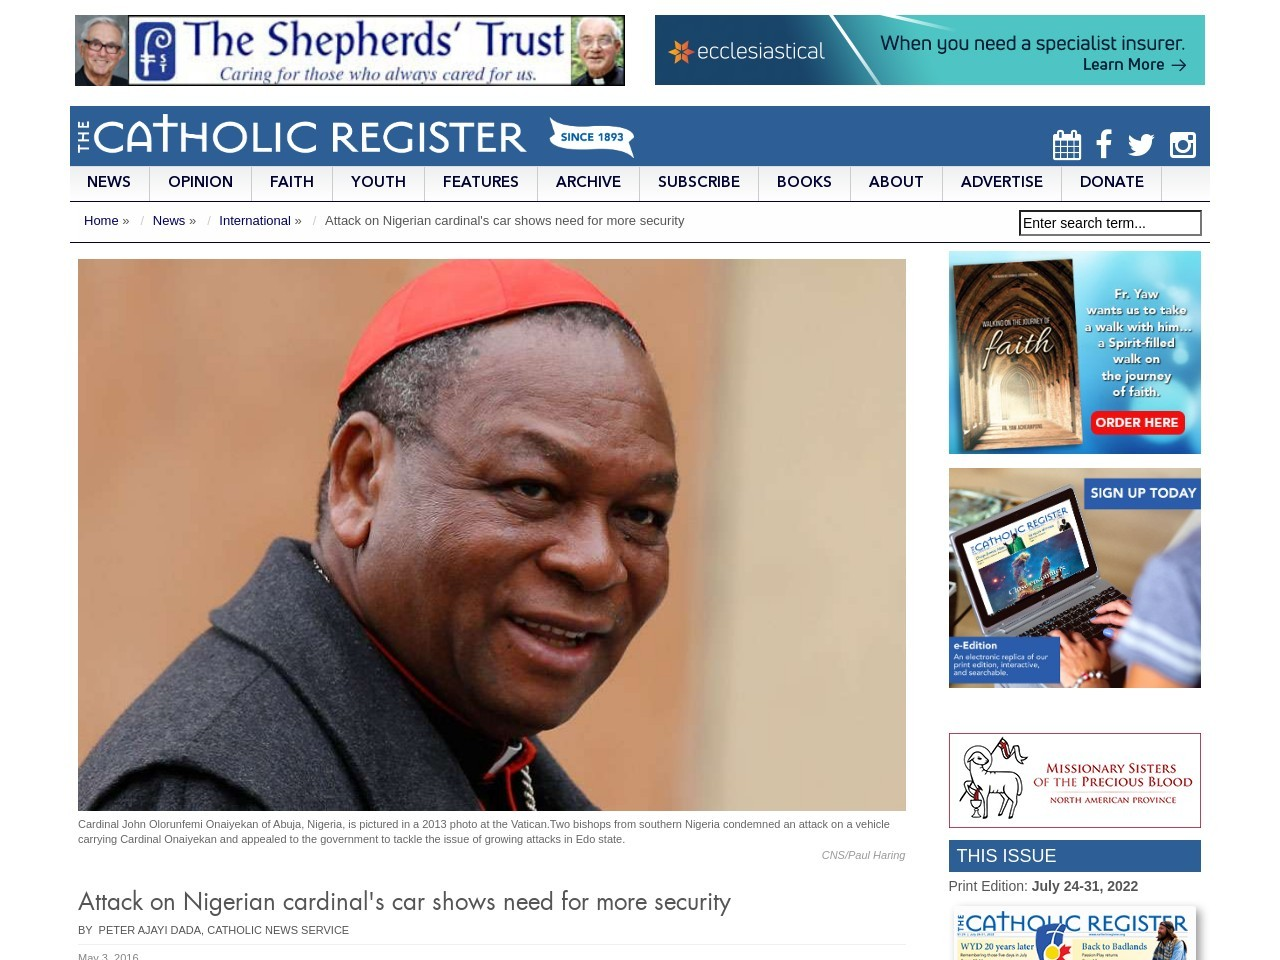 Attack on Nigerian cardinal's car shows need for more security